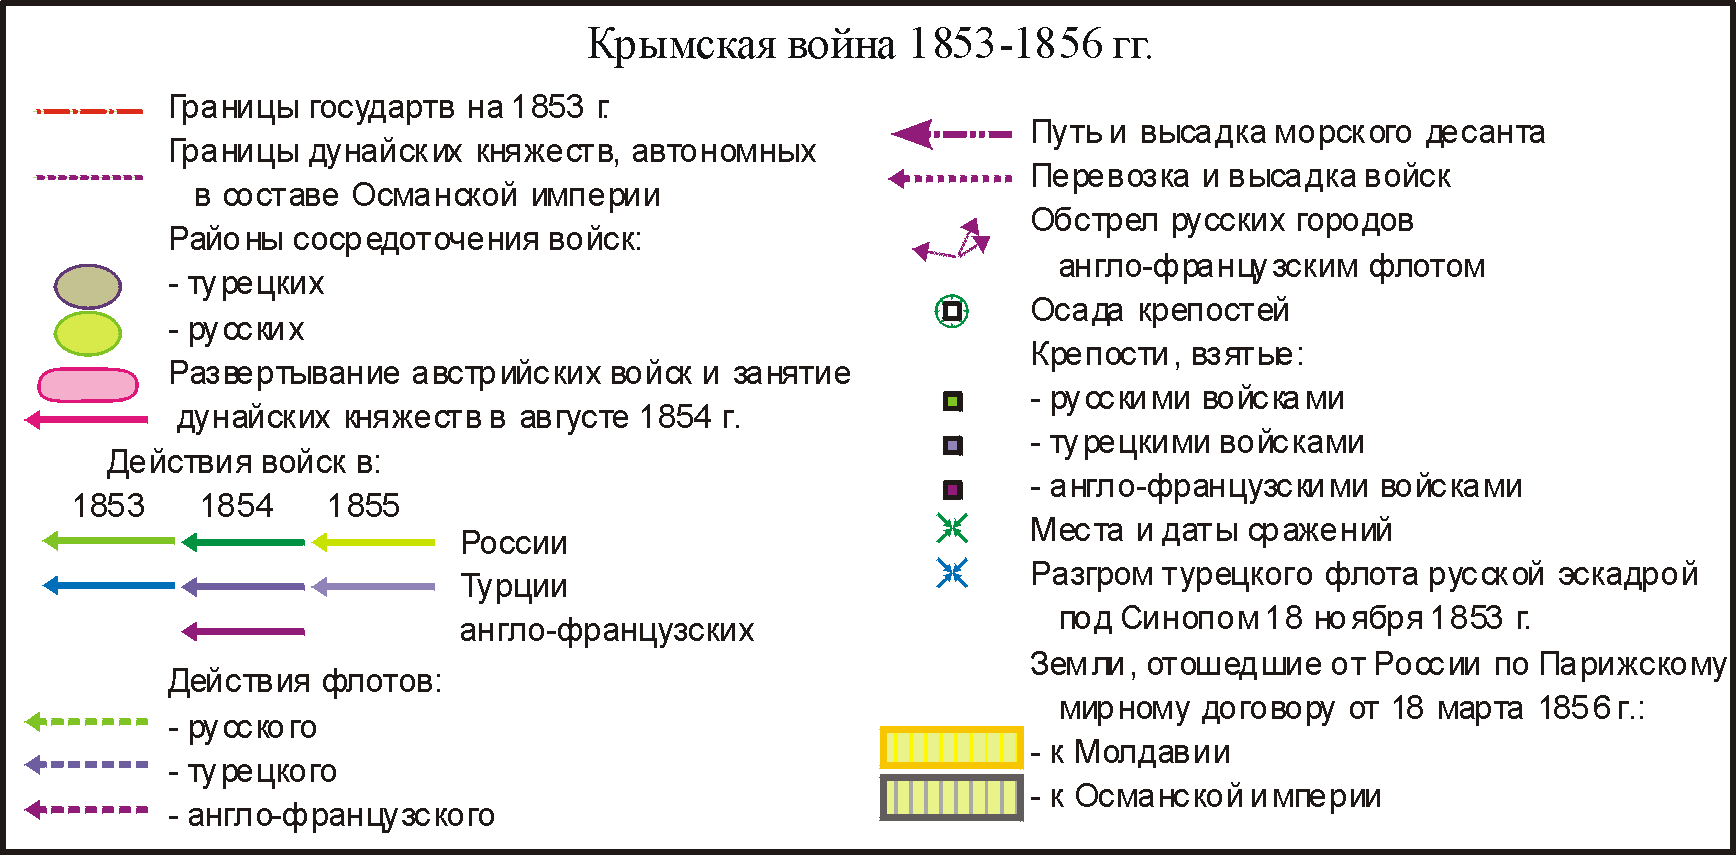 http://cont.ws/uploads/pic/2017/5/Crimean-war-1853-56-legend%20%281%29.png